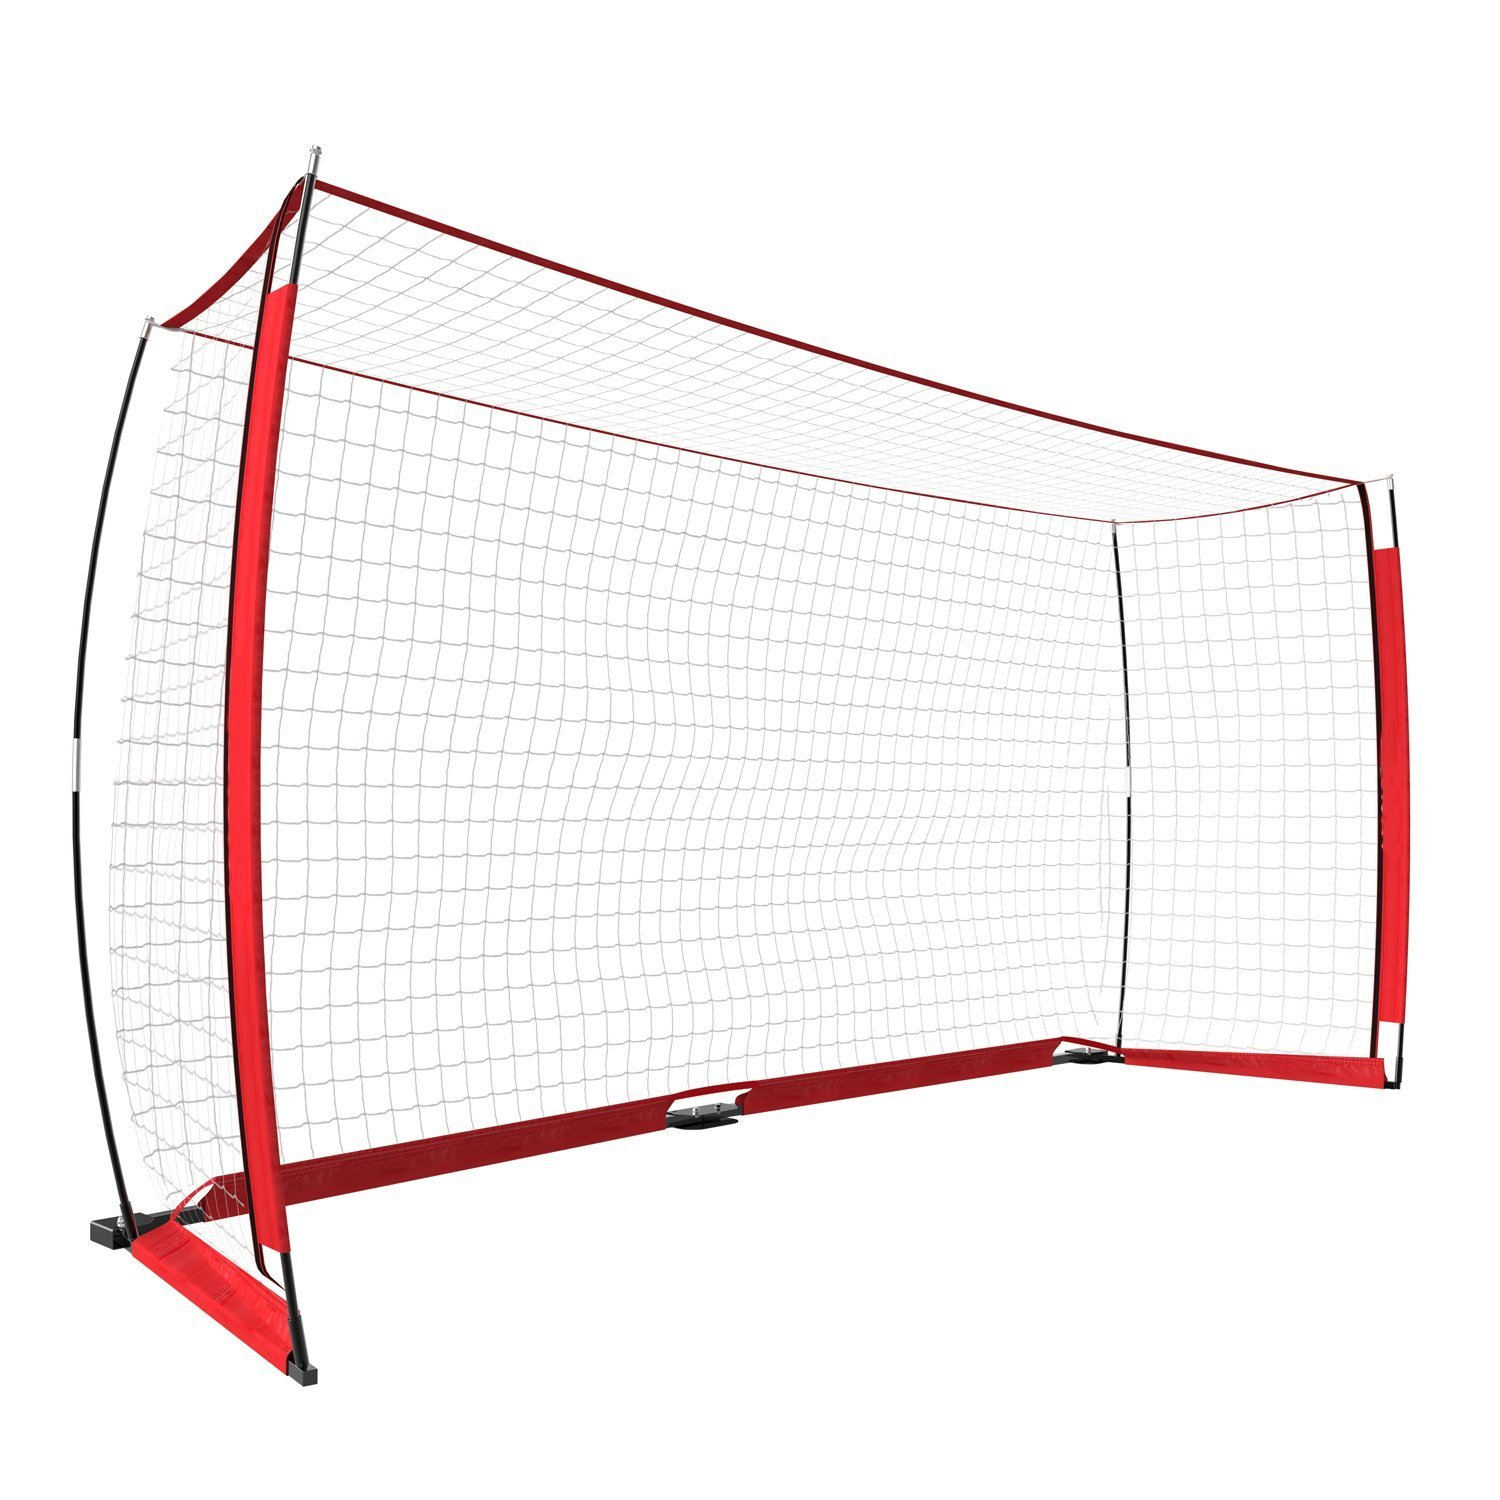 Portable Soccer Net Stable Soccer Goal Net 12x6 ft with Carrying Bag